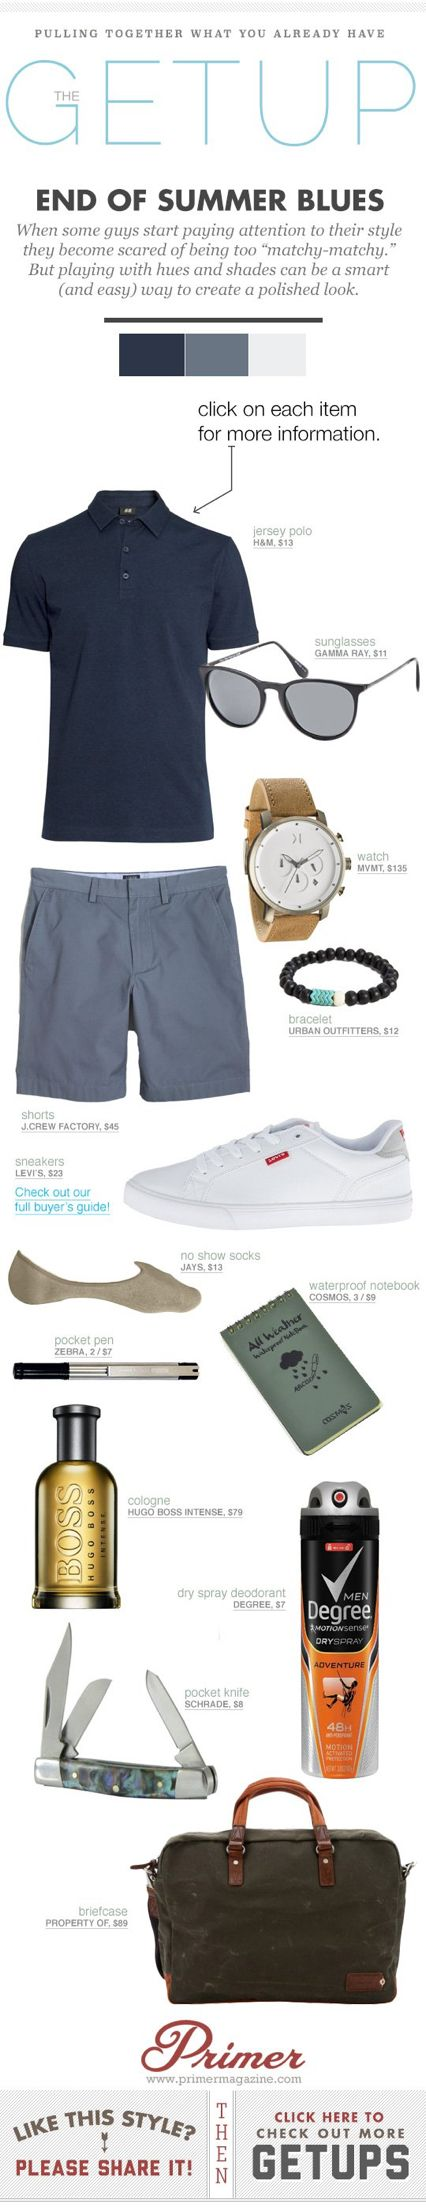 The Getup: End of Summer Blues